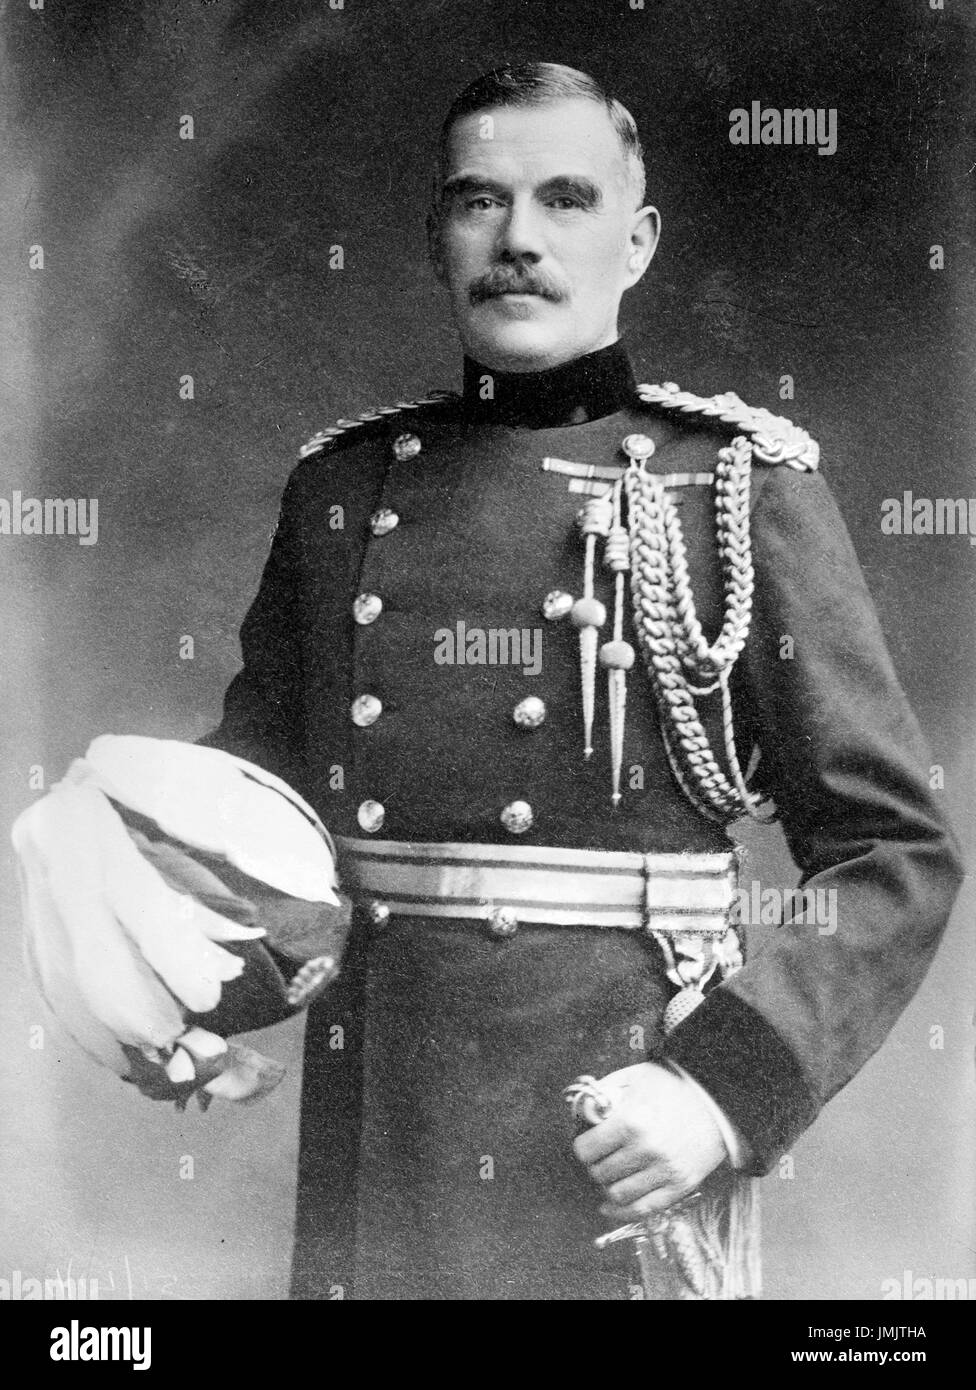 WILLIAM ROBERTSON Ist Baronet (1860-1933)  as Chief of the Imperial General Staff in 1915 - Stock Image